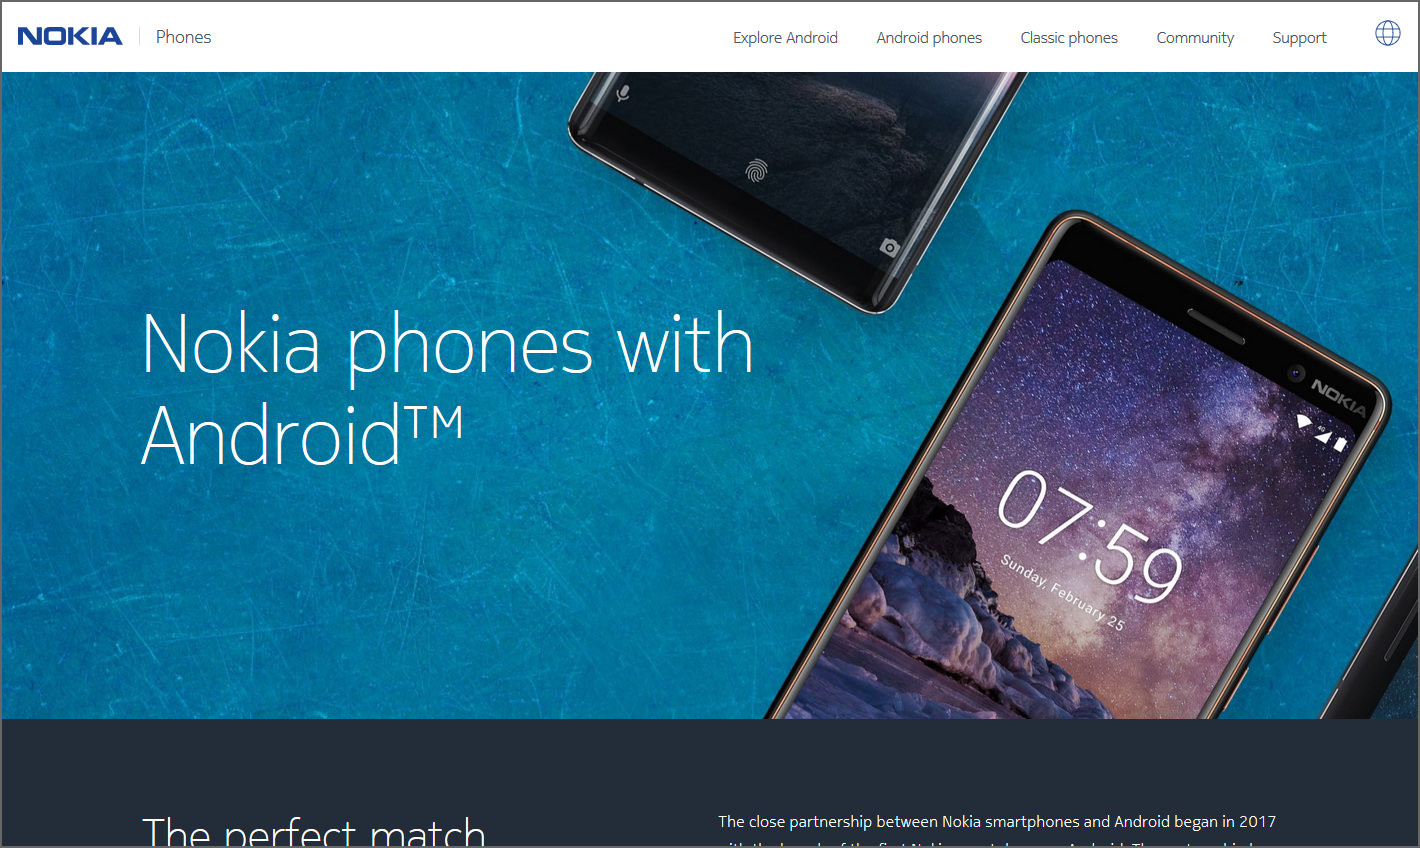 4 Smartphone Makers With Android One - Nokia, XiaoMi